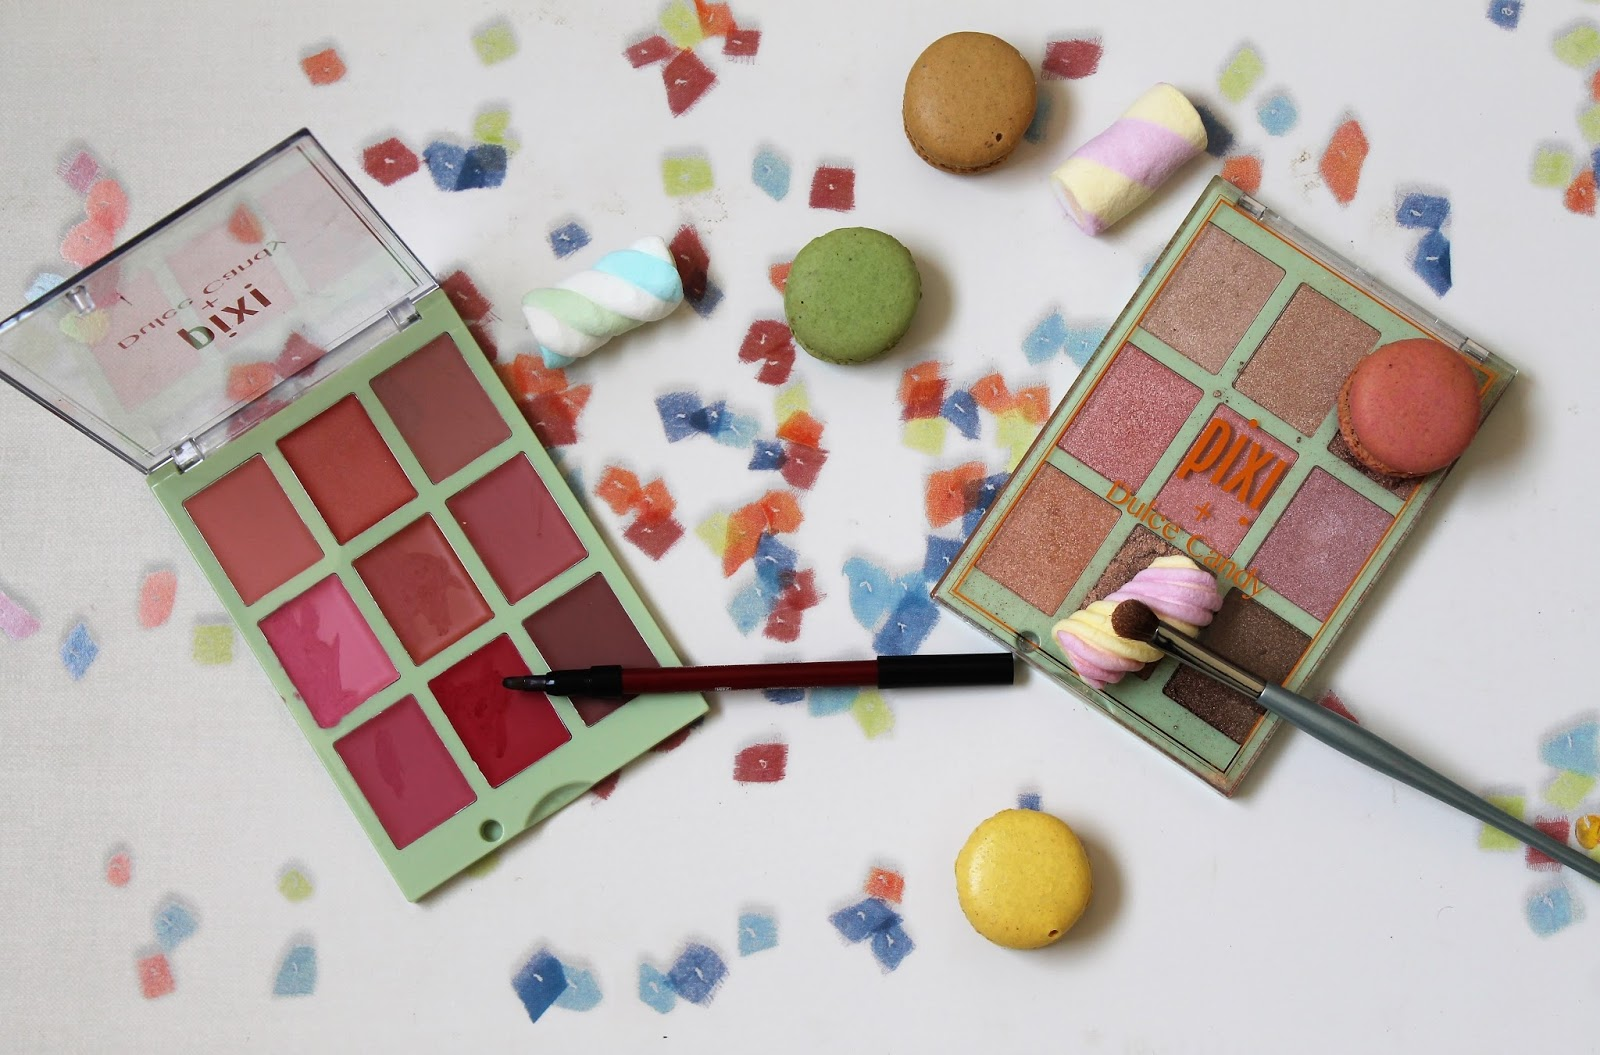 pixi and dulce candy